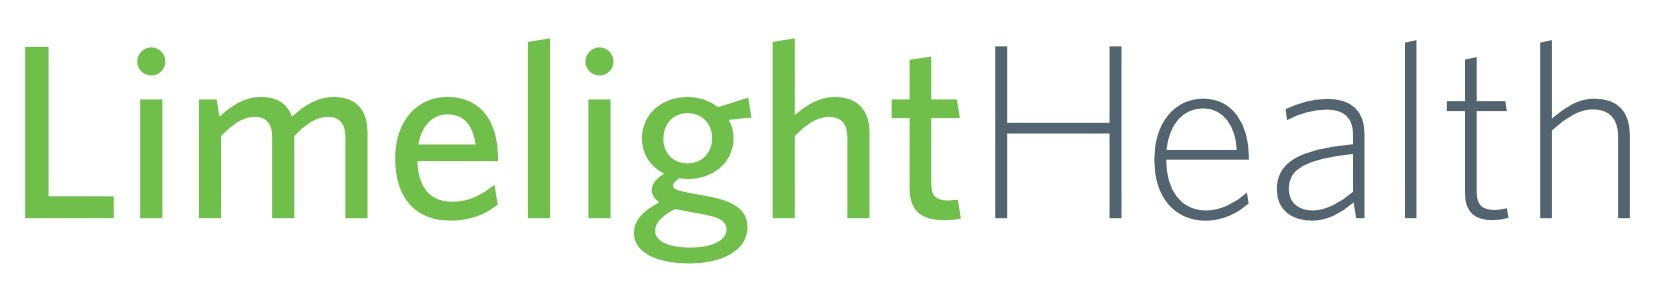 Image result for limelight health